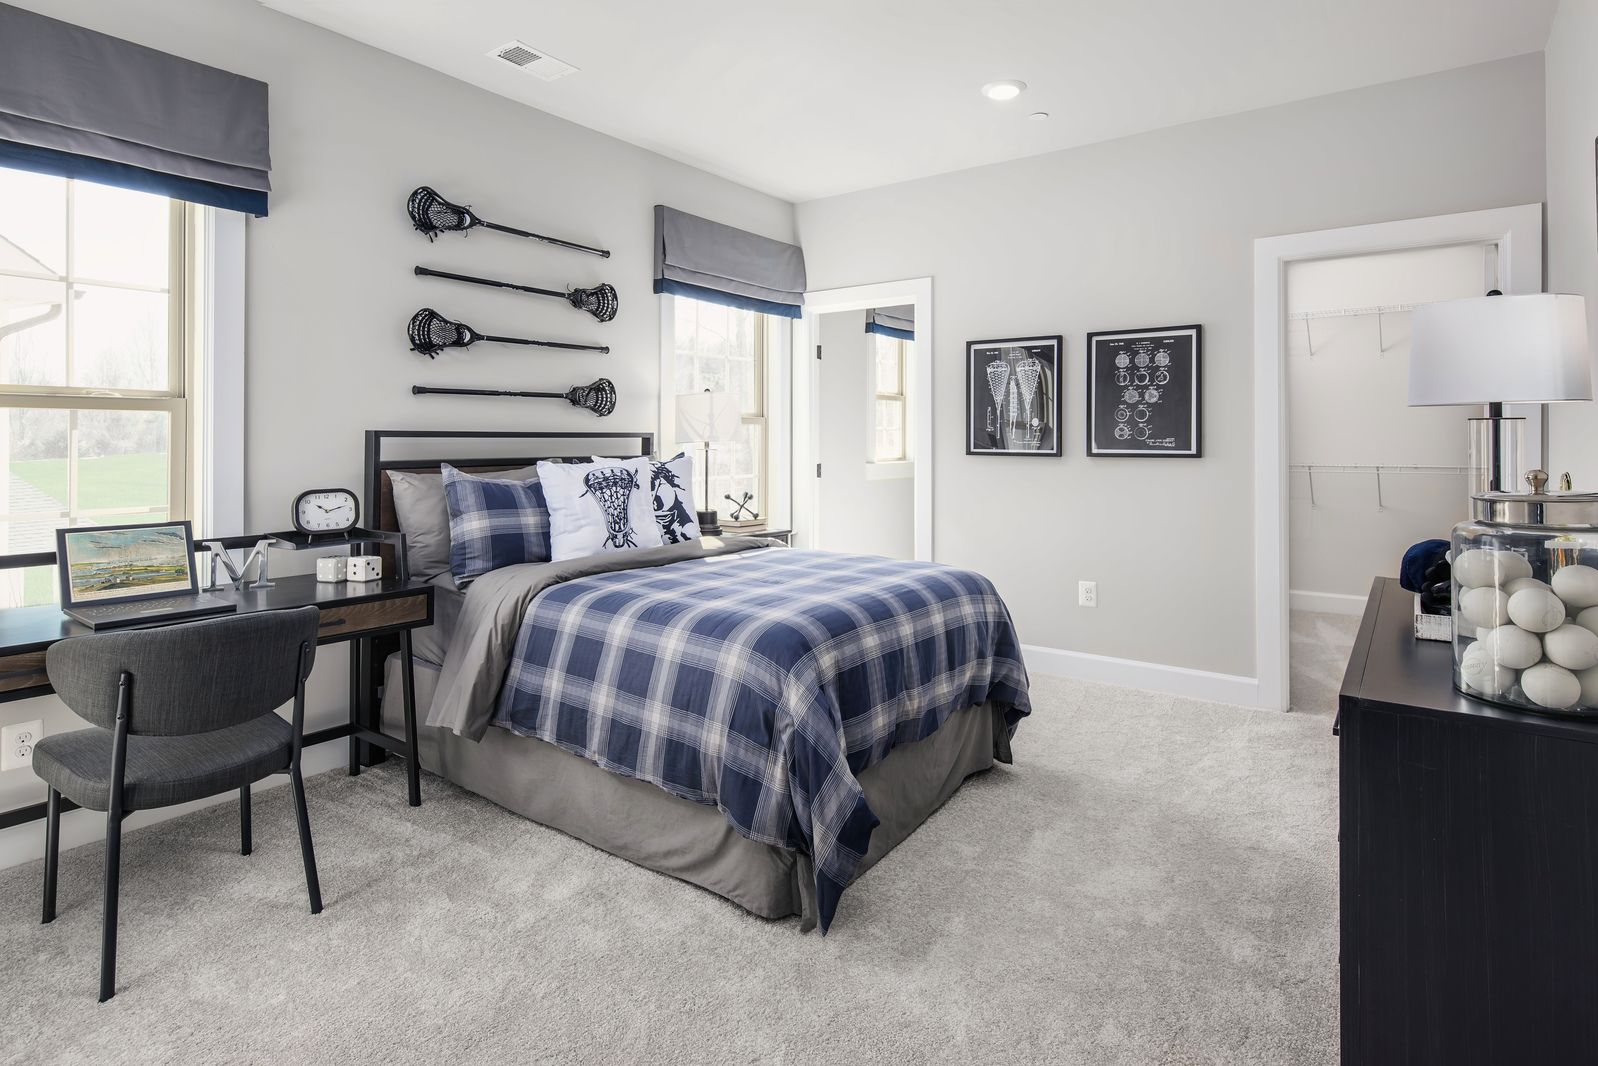 Bedroom featured in the Stratford Hall By NVHomes in Sussex, DE